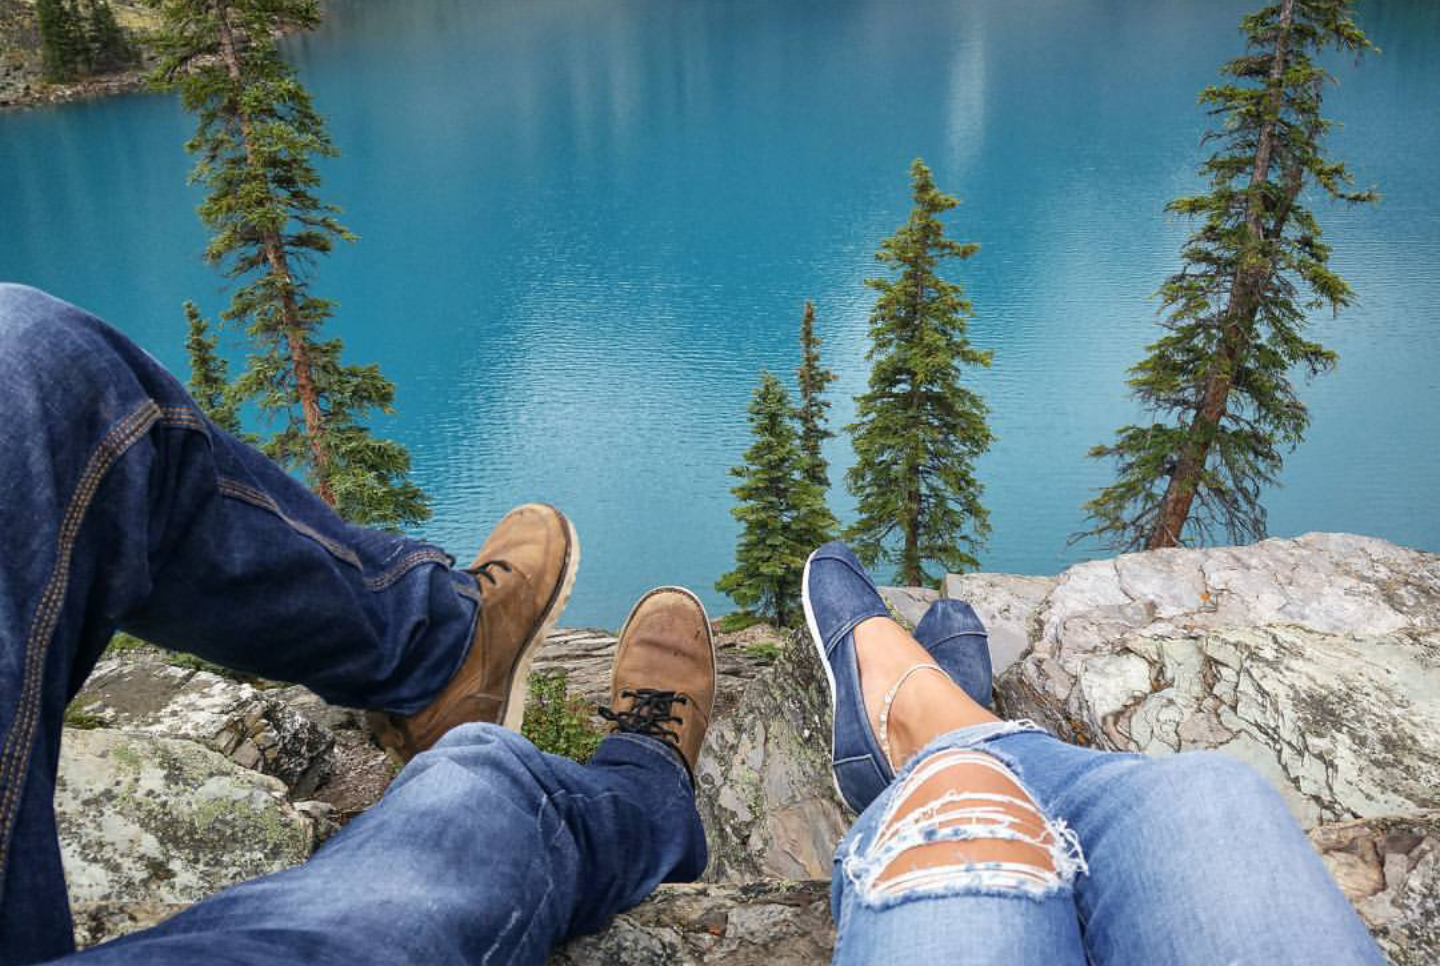 The water of Moraine Lake is so brilliant blue, that many tourists believe that the lake is drained and the bottom painted blue every year! In reality, the blue colour of these glacial lakes is produced by minerals and microscopic particles of rock from the mountains.